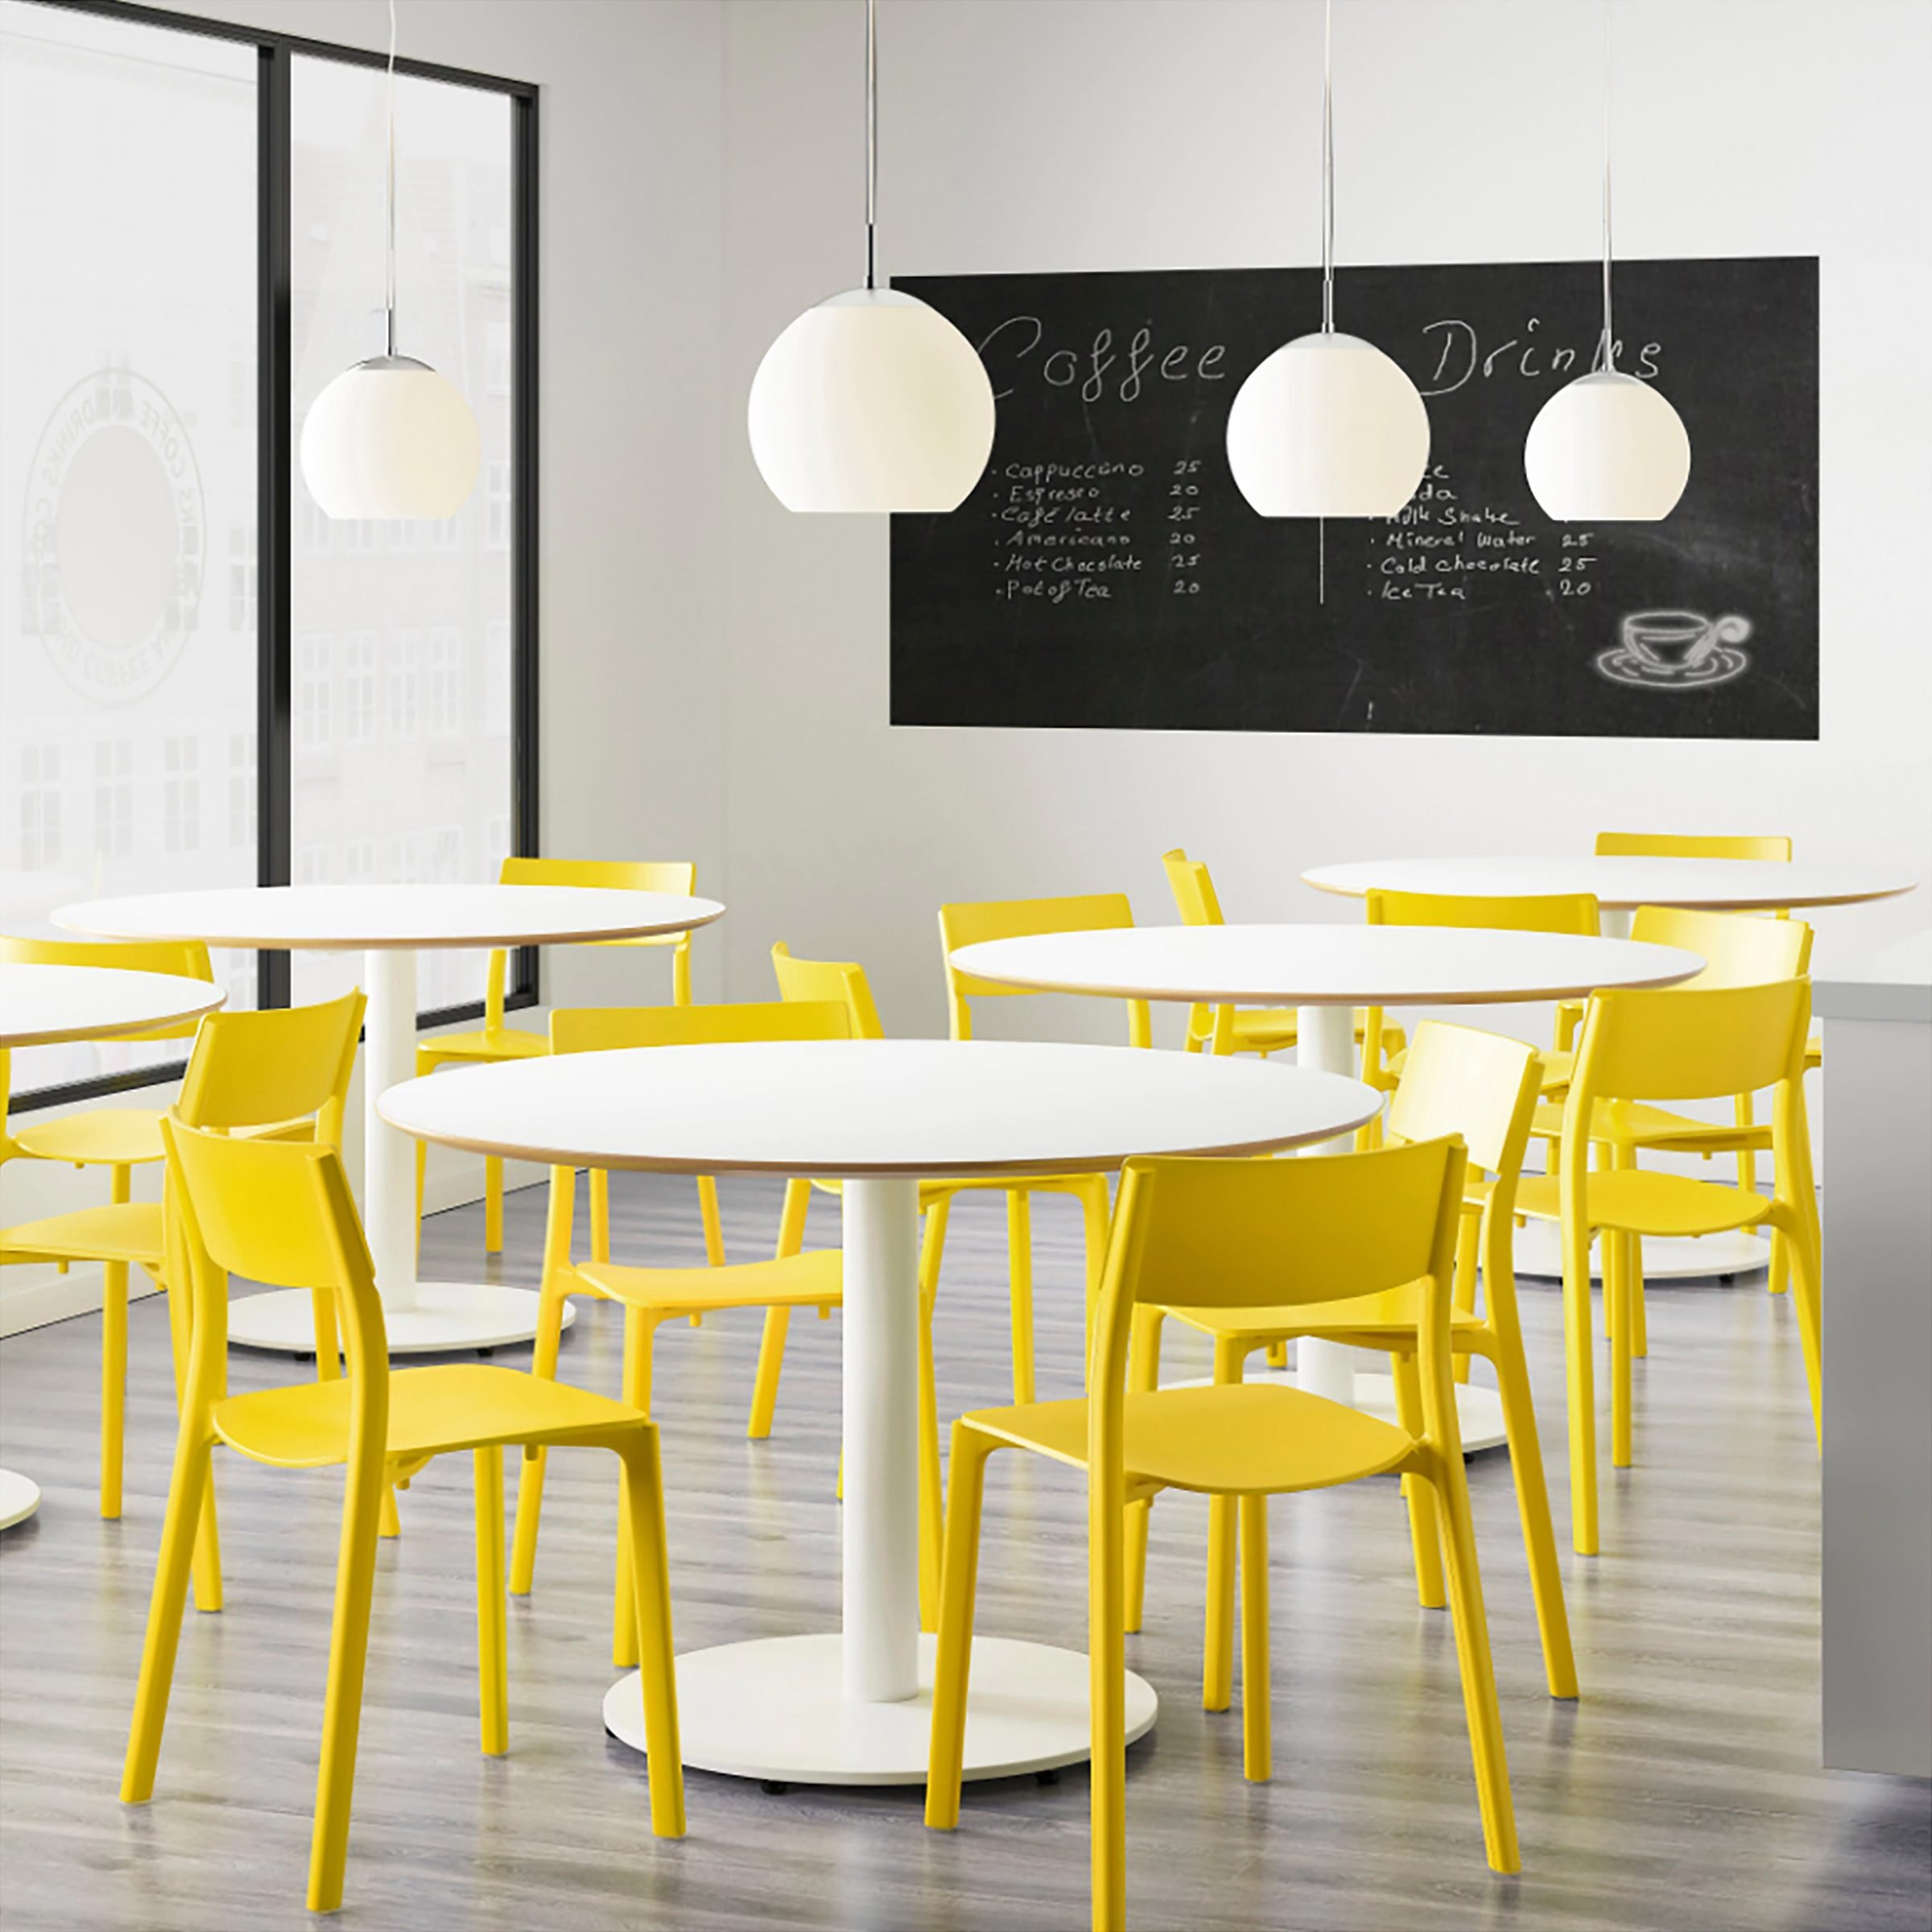 Surprising Things You Never Knew You Could Buy At IKEA Readers Digest - Does ikea have flooring